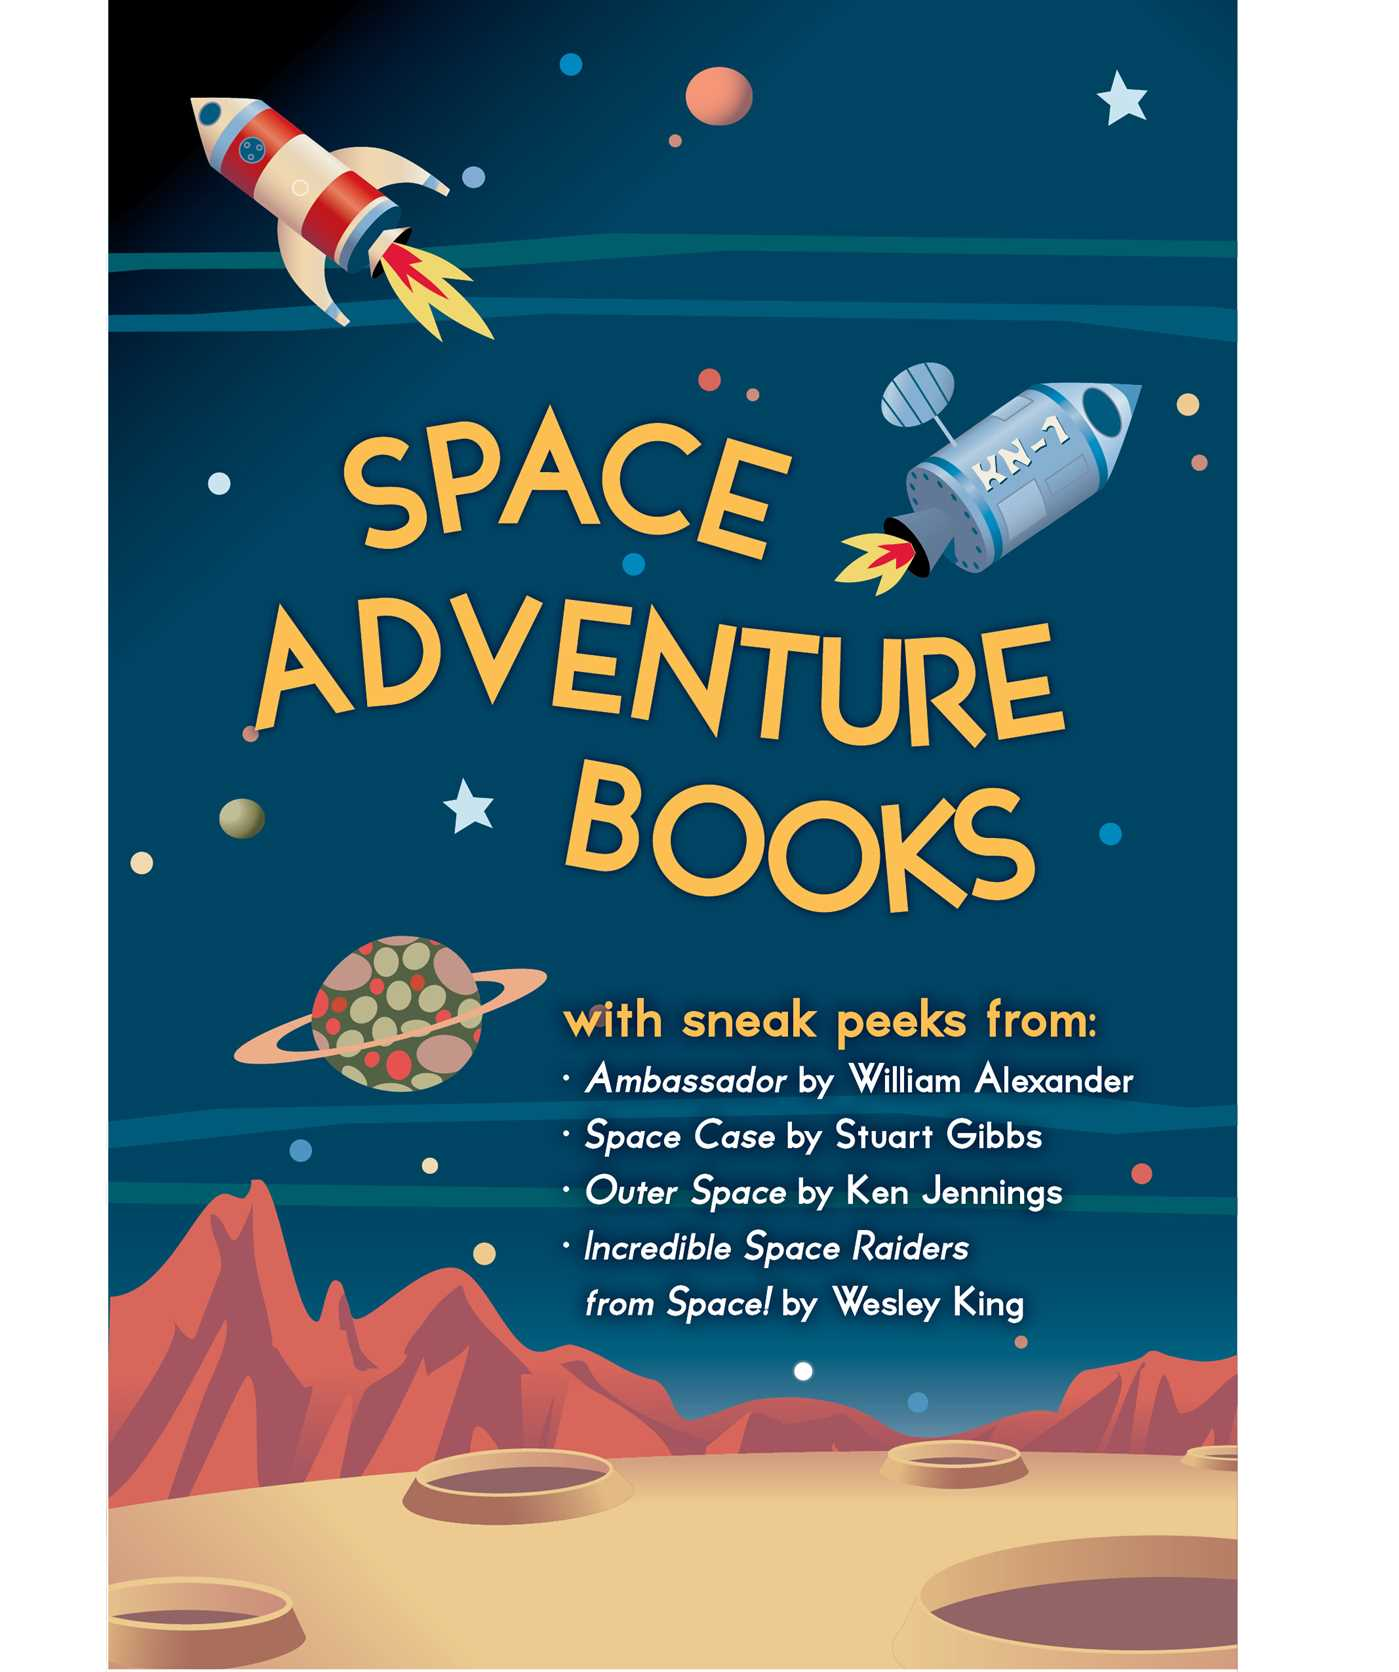 Space-adventure-books-sampler-9781481434973_hr